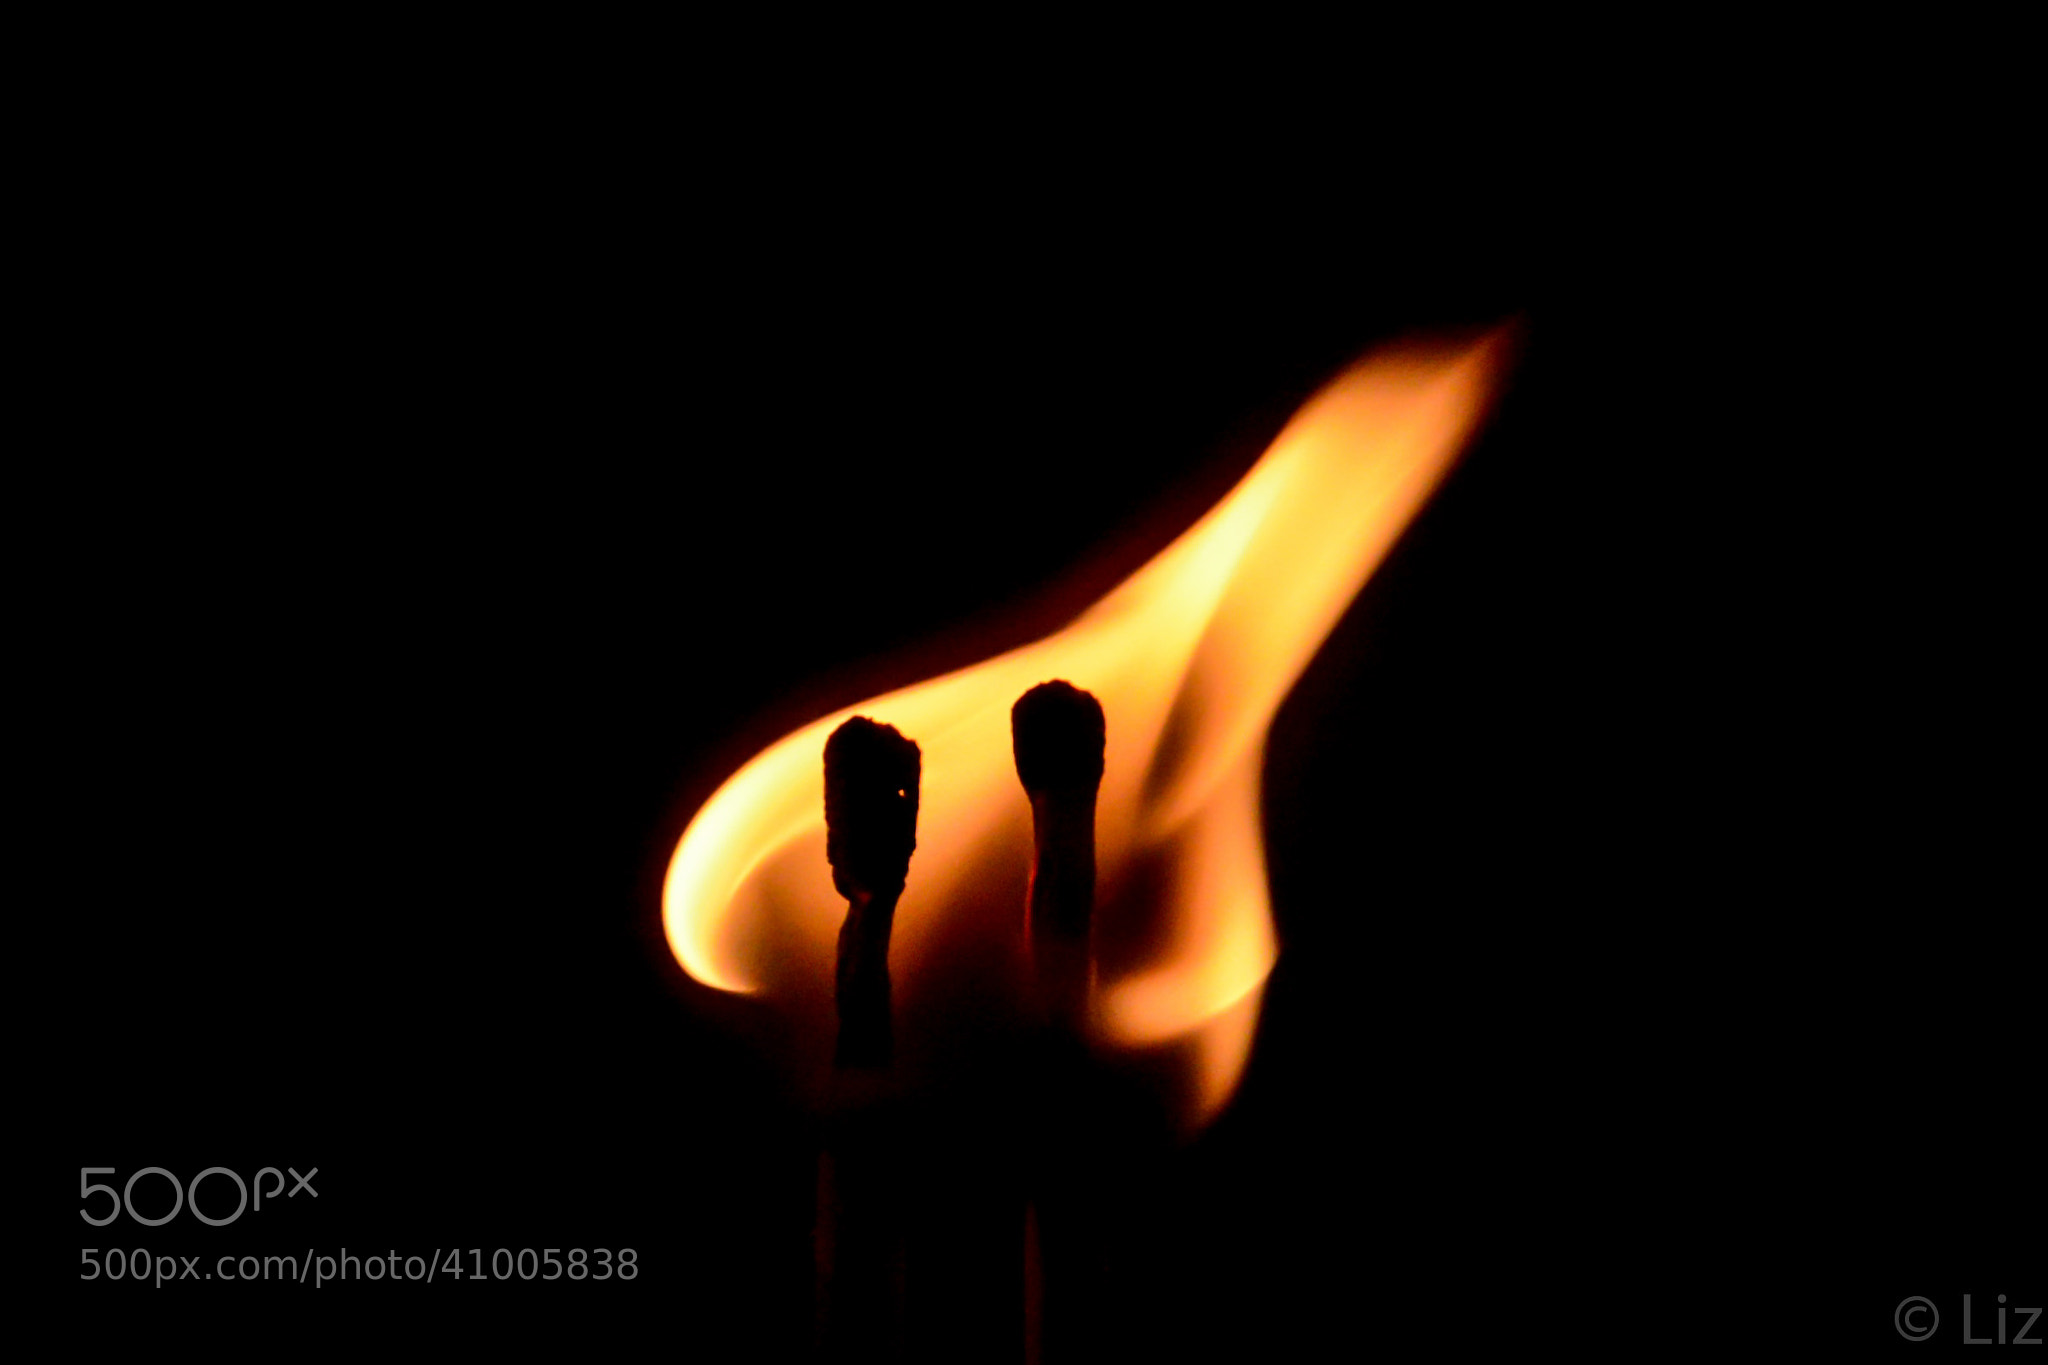 Photograph Love flame by lizfortie on 500px